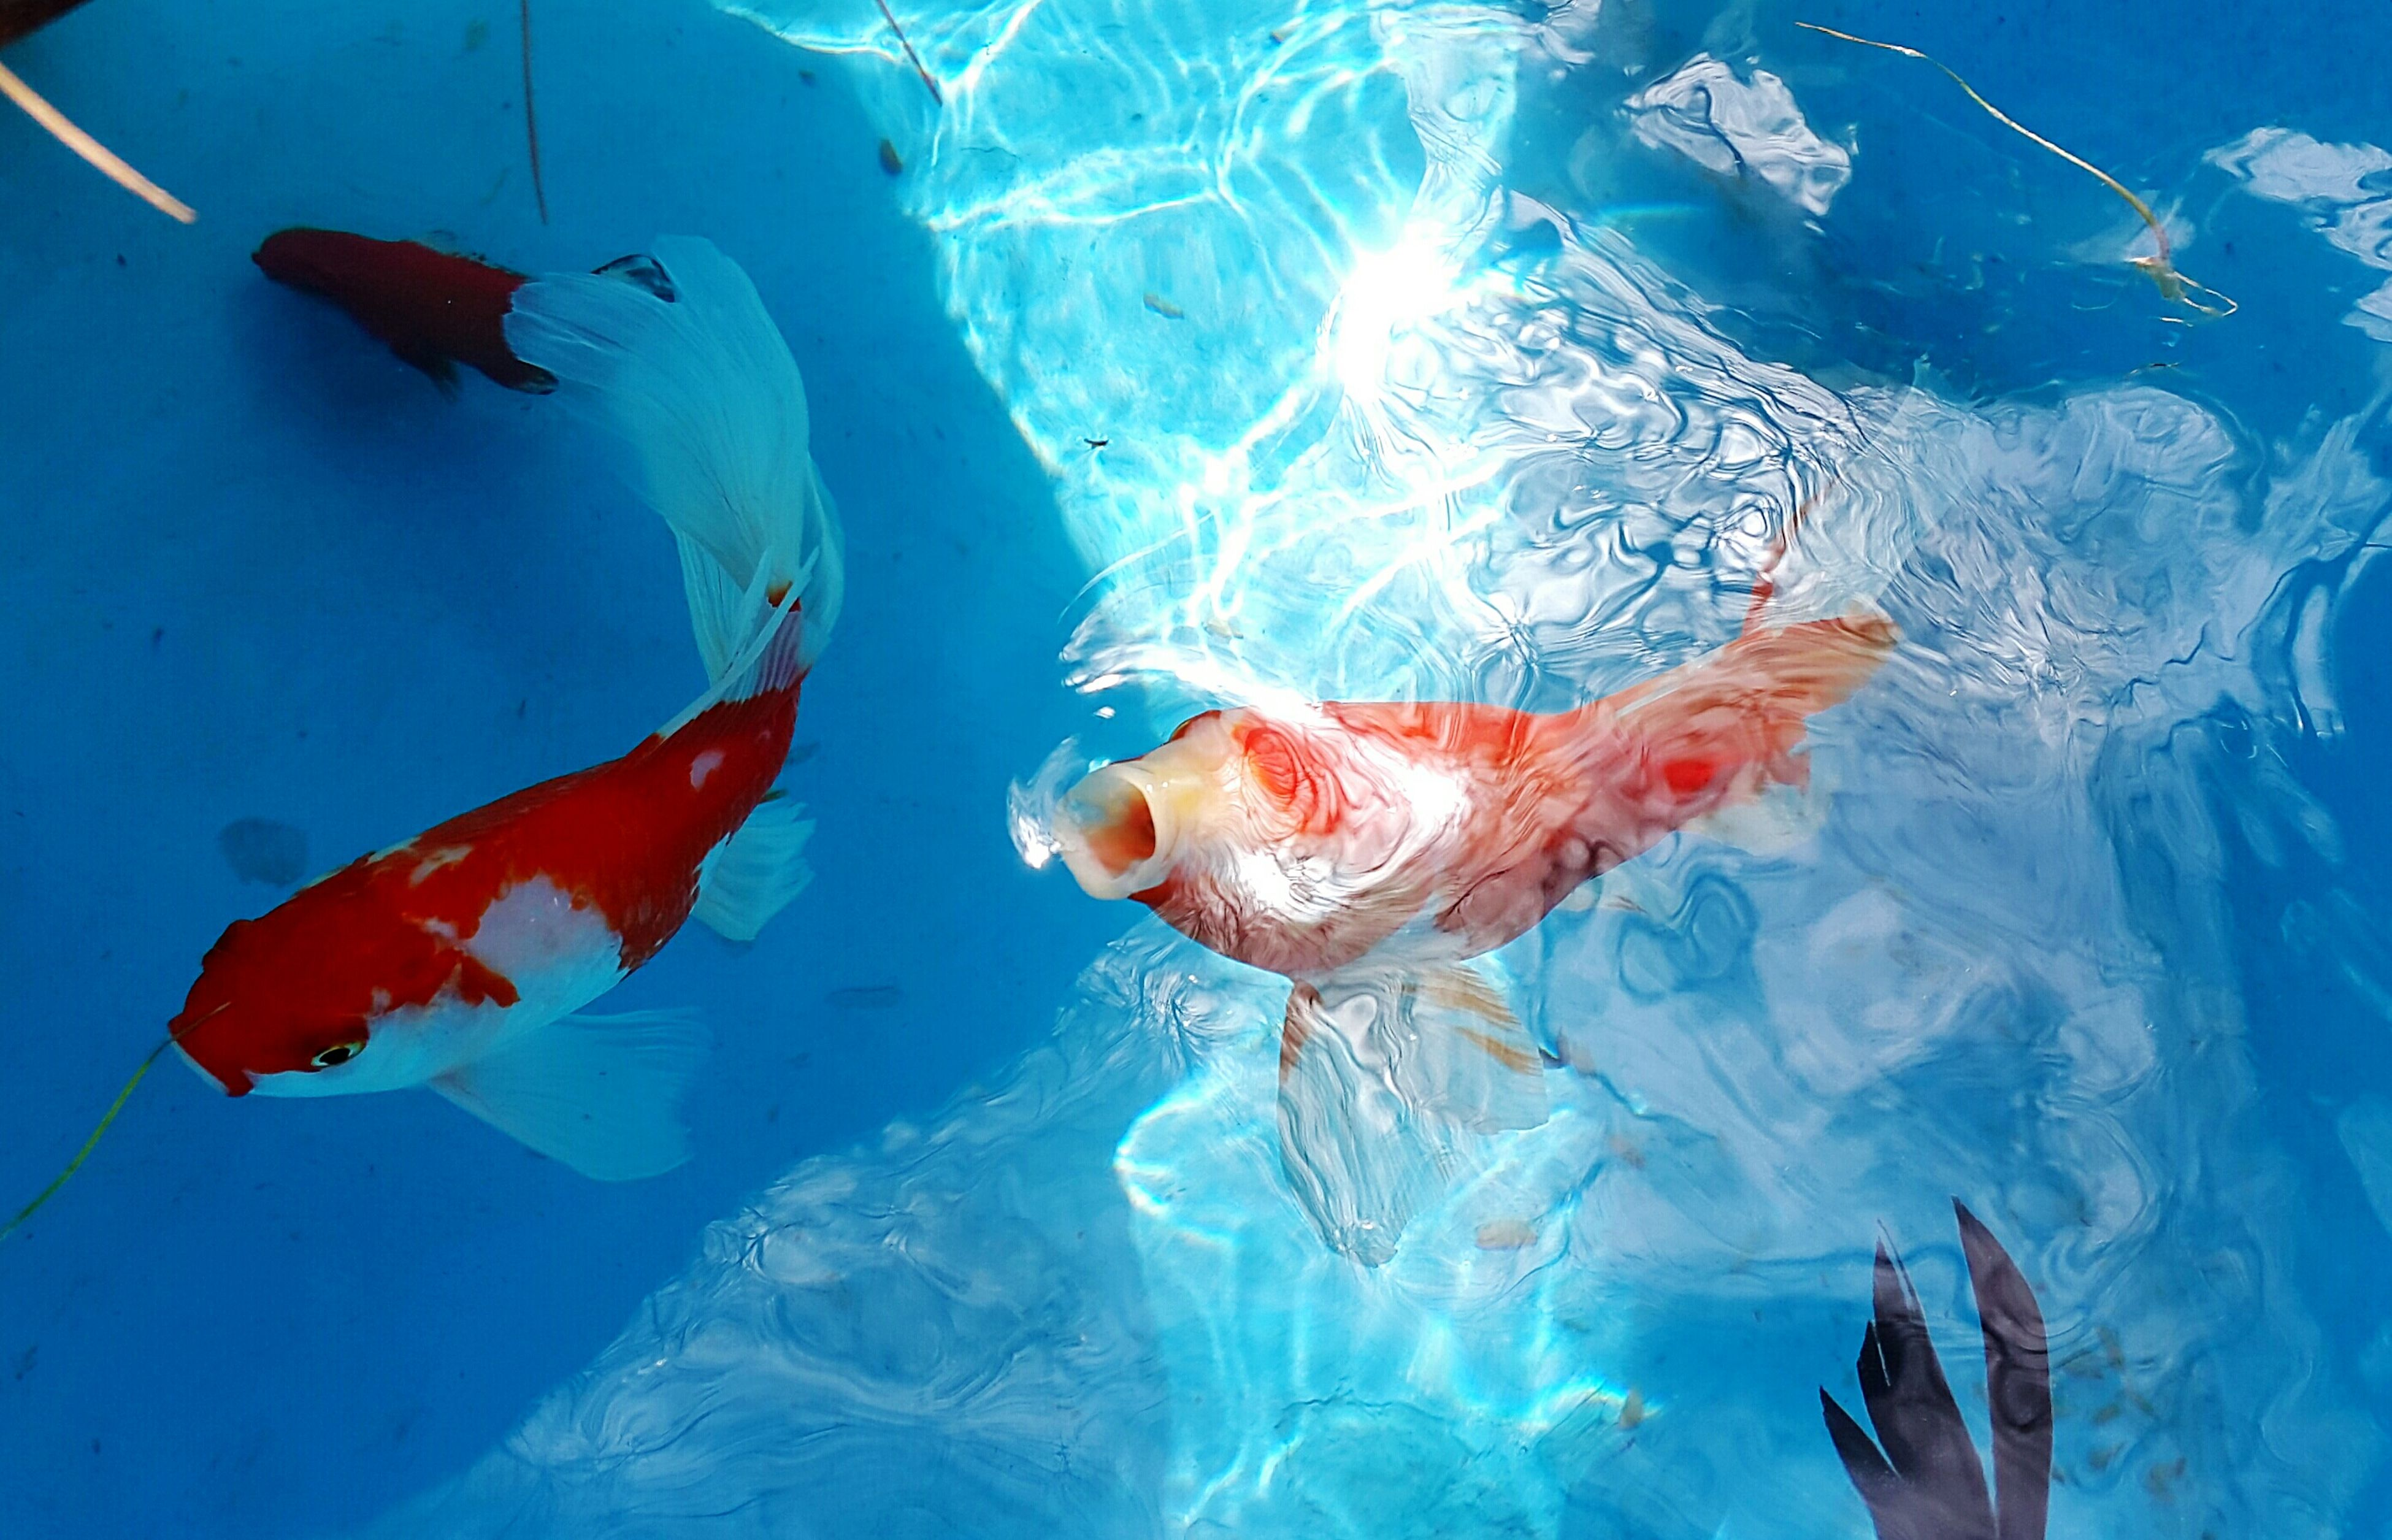 underwater, swimming, water, fish, animal themes, sea life, blue, undersea, animals in the wild, wildlife, sea, transparent, school of fish, one person, nature, one animal, leisure activity, aquarium, beauty in nature